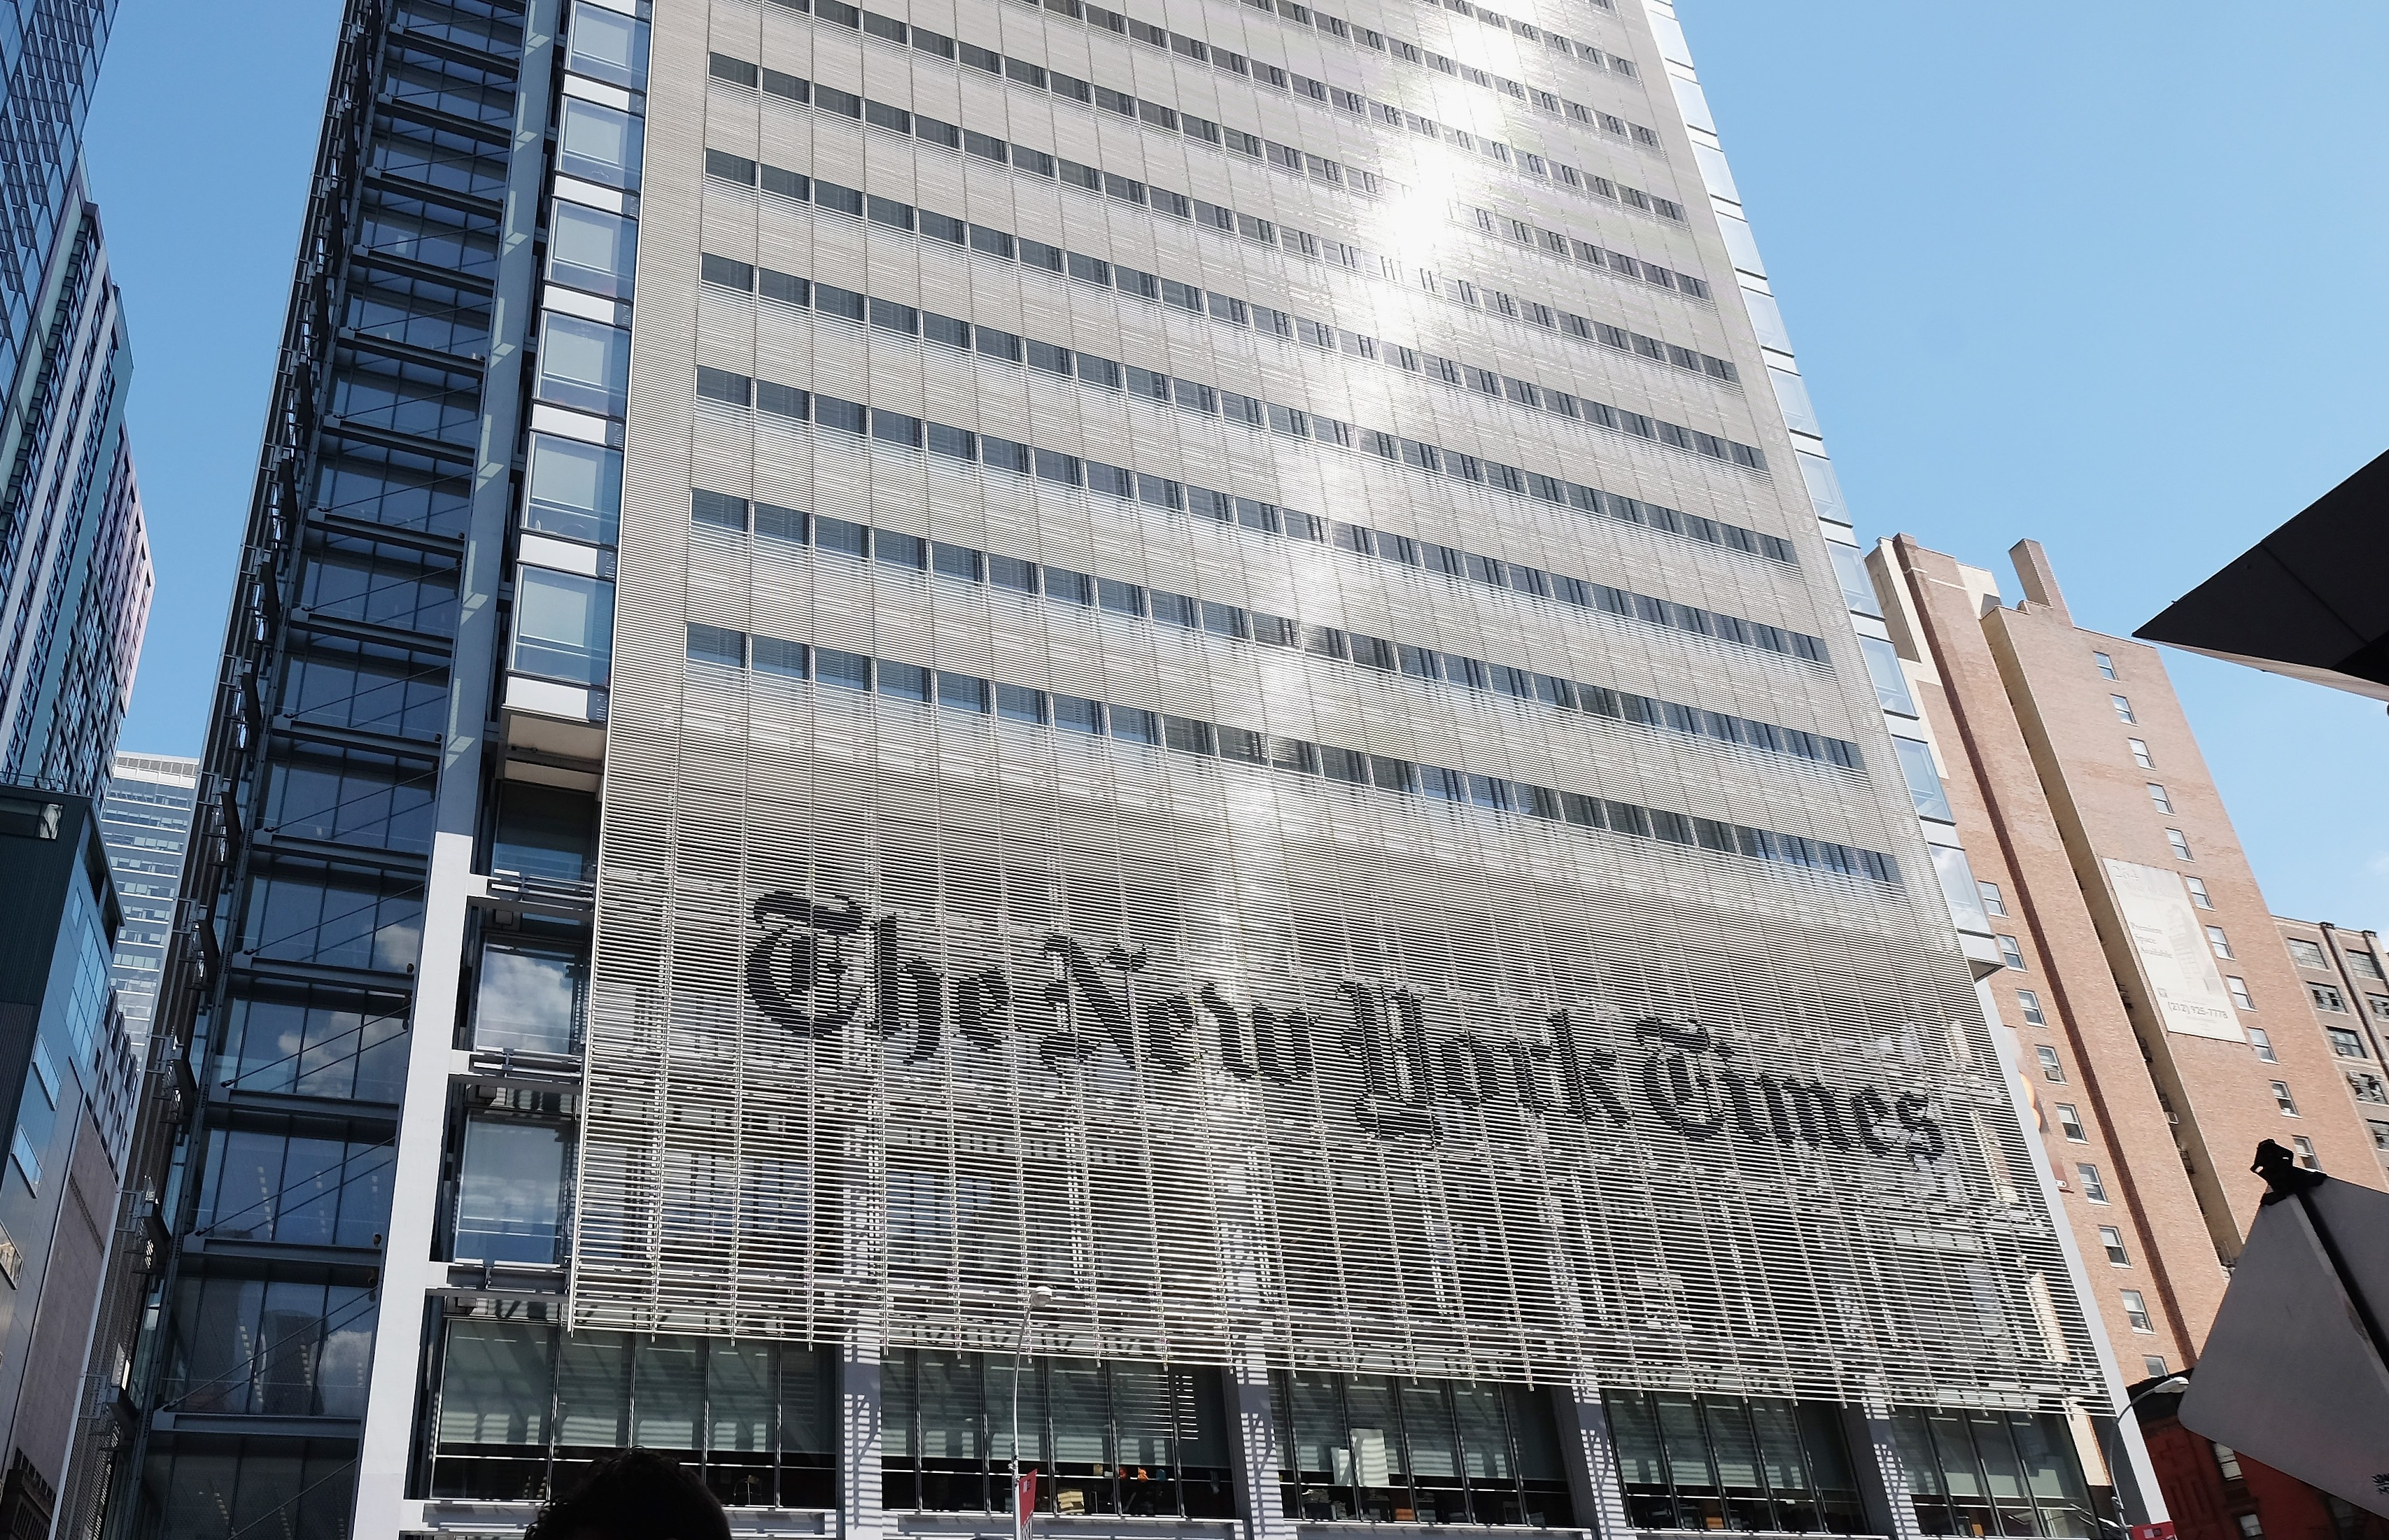 The Tonight Show Starring Jimmy Fallon New York City, New York Times to Vacate 8 Floors From Its Building to Generate ...